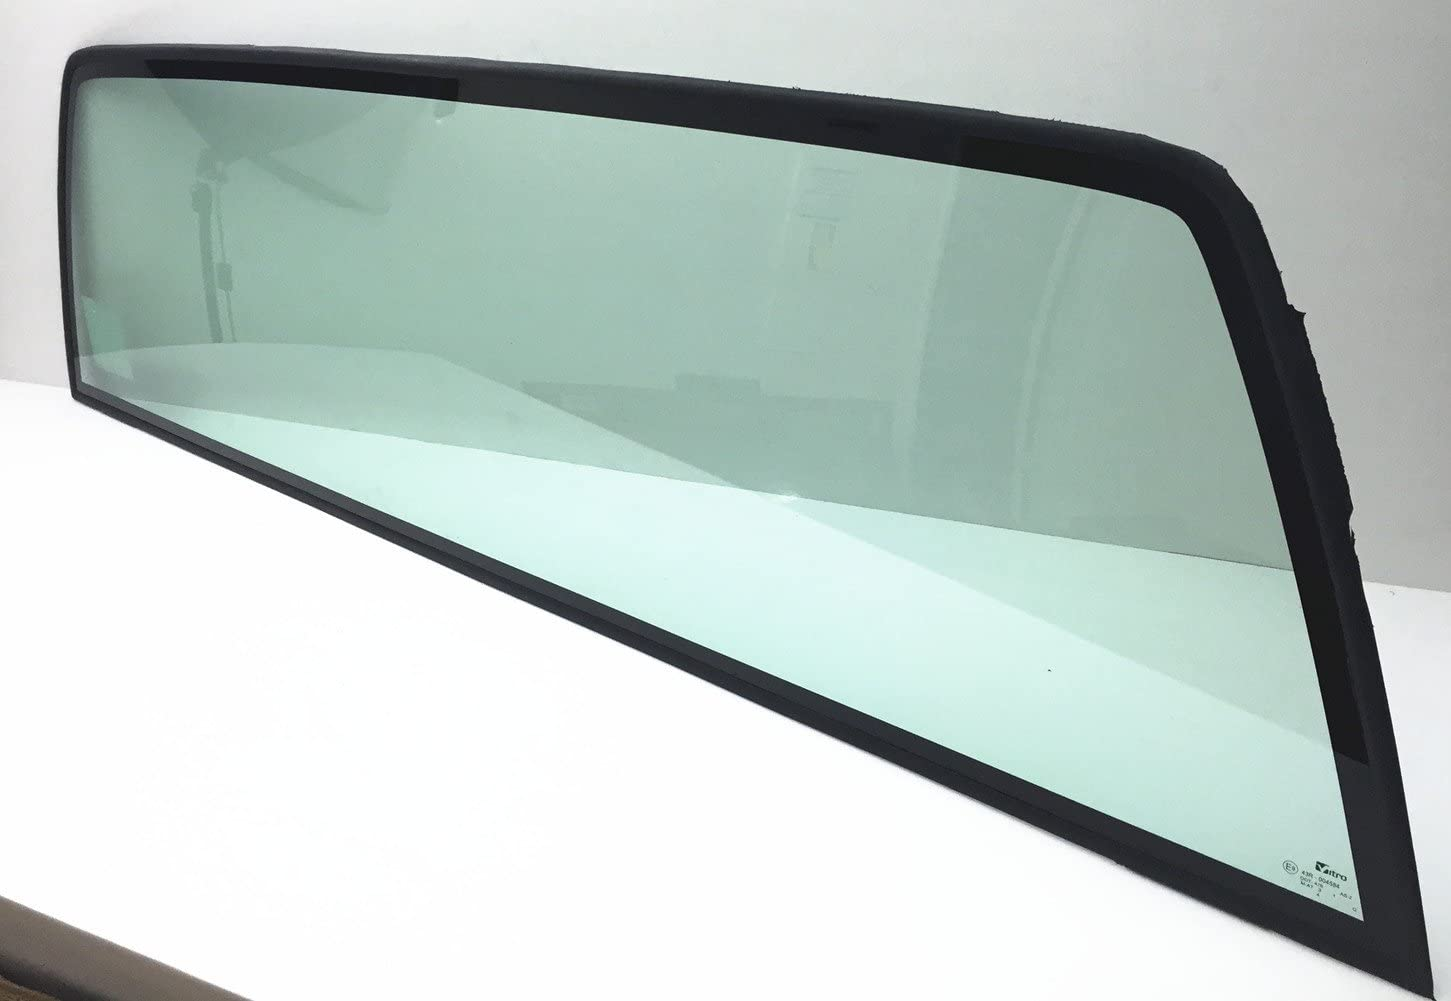 NAGD Stationary Back Window Back Glass Compatible with Chevrolet Pickup//GMC Pickup 1988-1999 C1500 K1500 Models